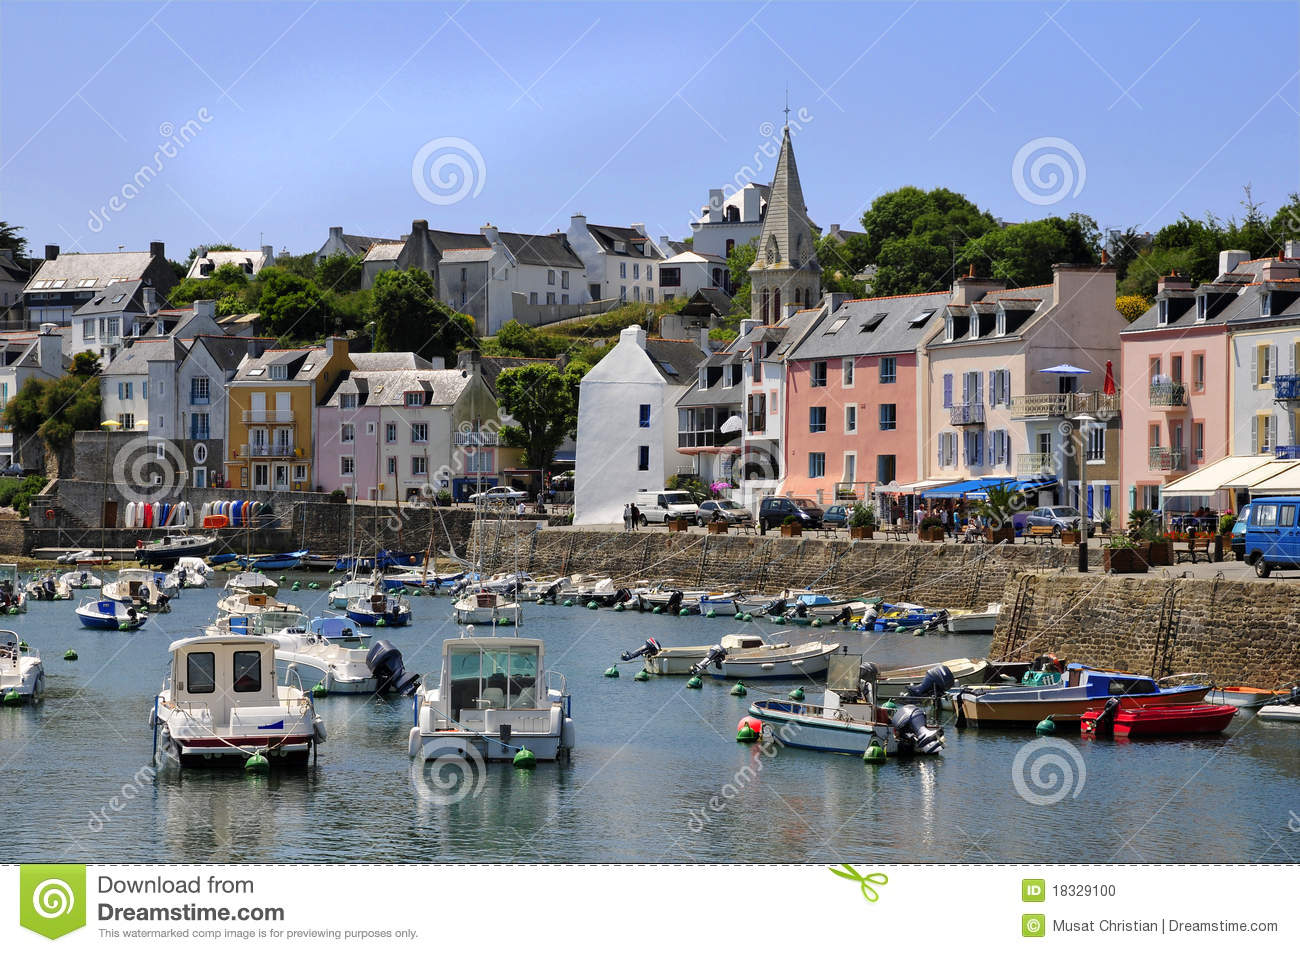 Port de sauzon la belle ile en france photo stock - Belle piscine ile de france ...